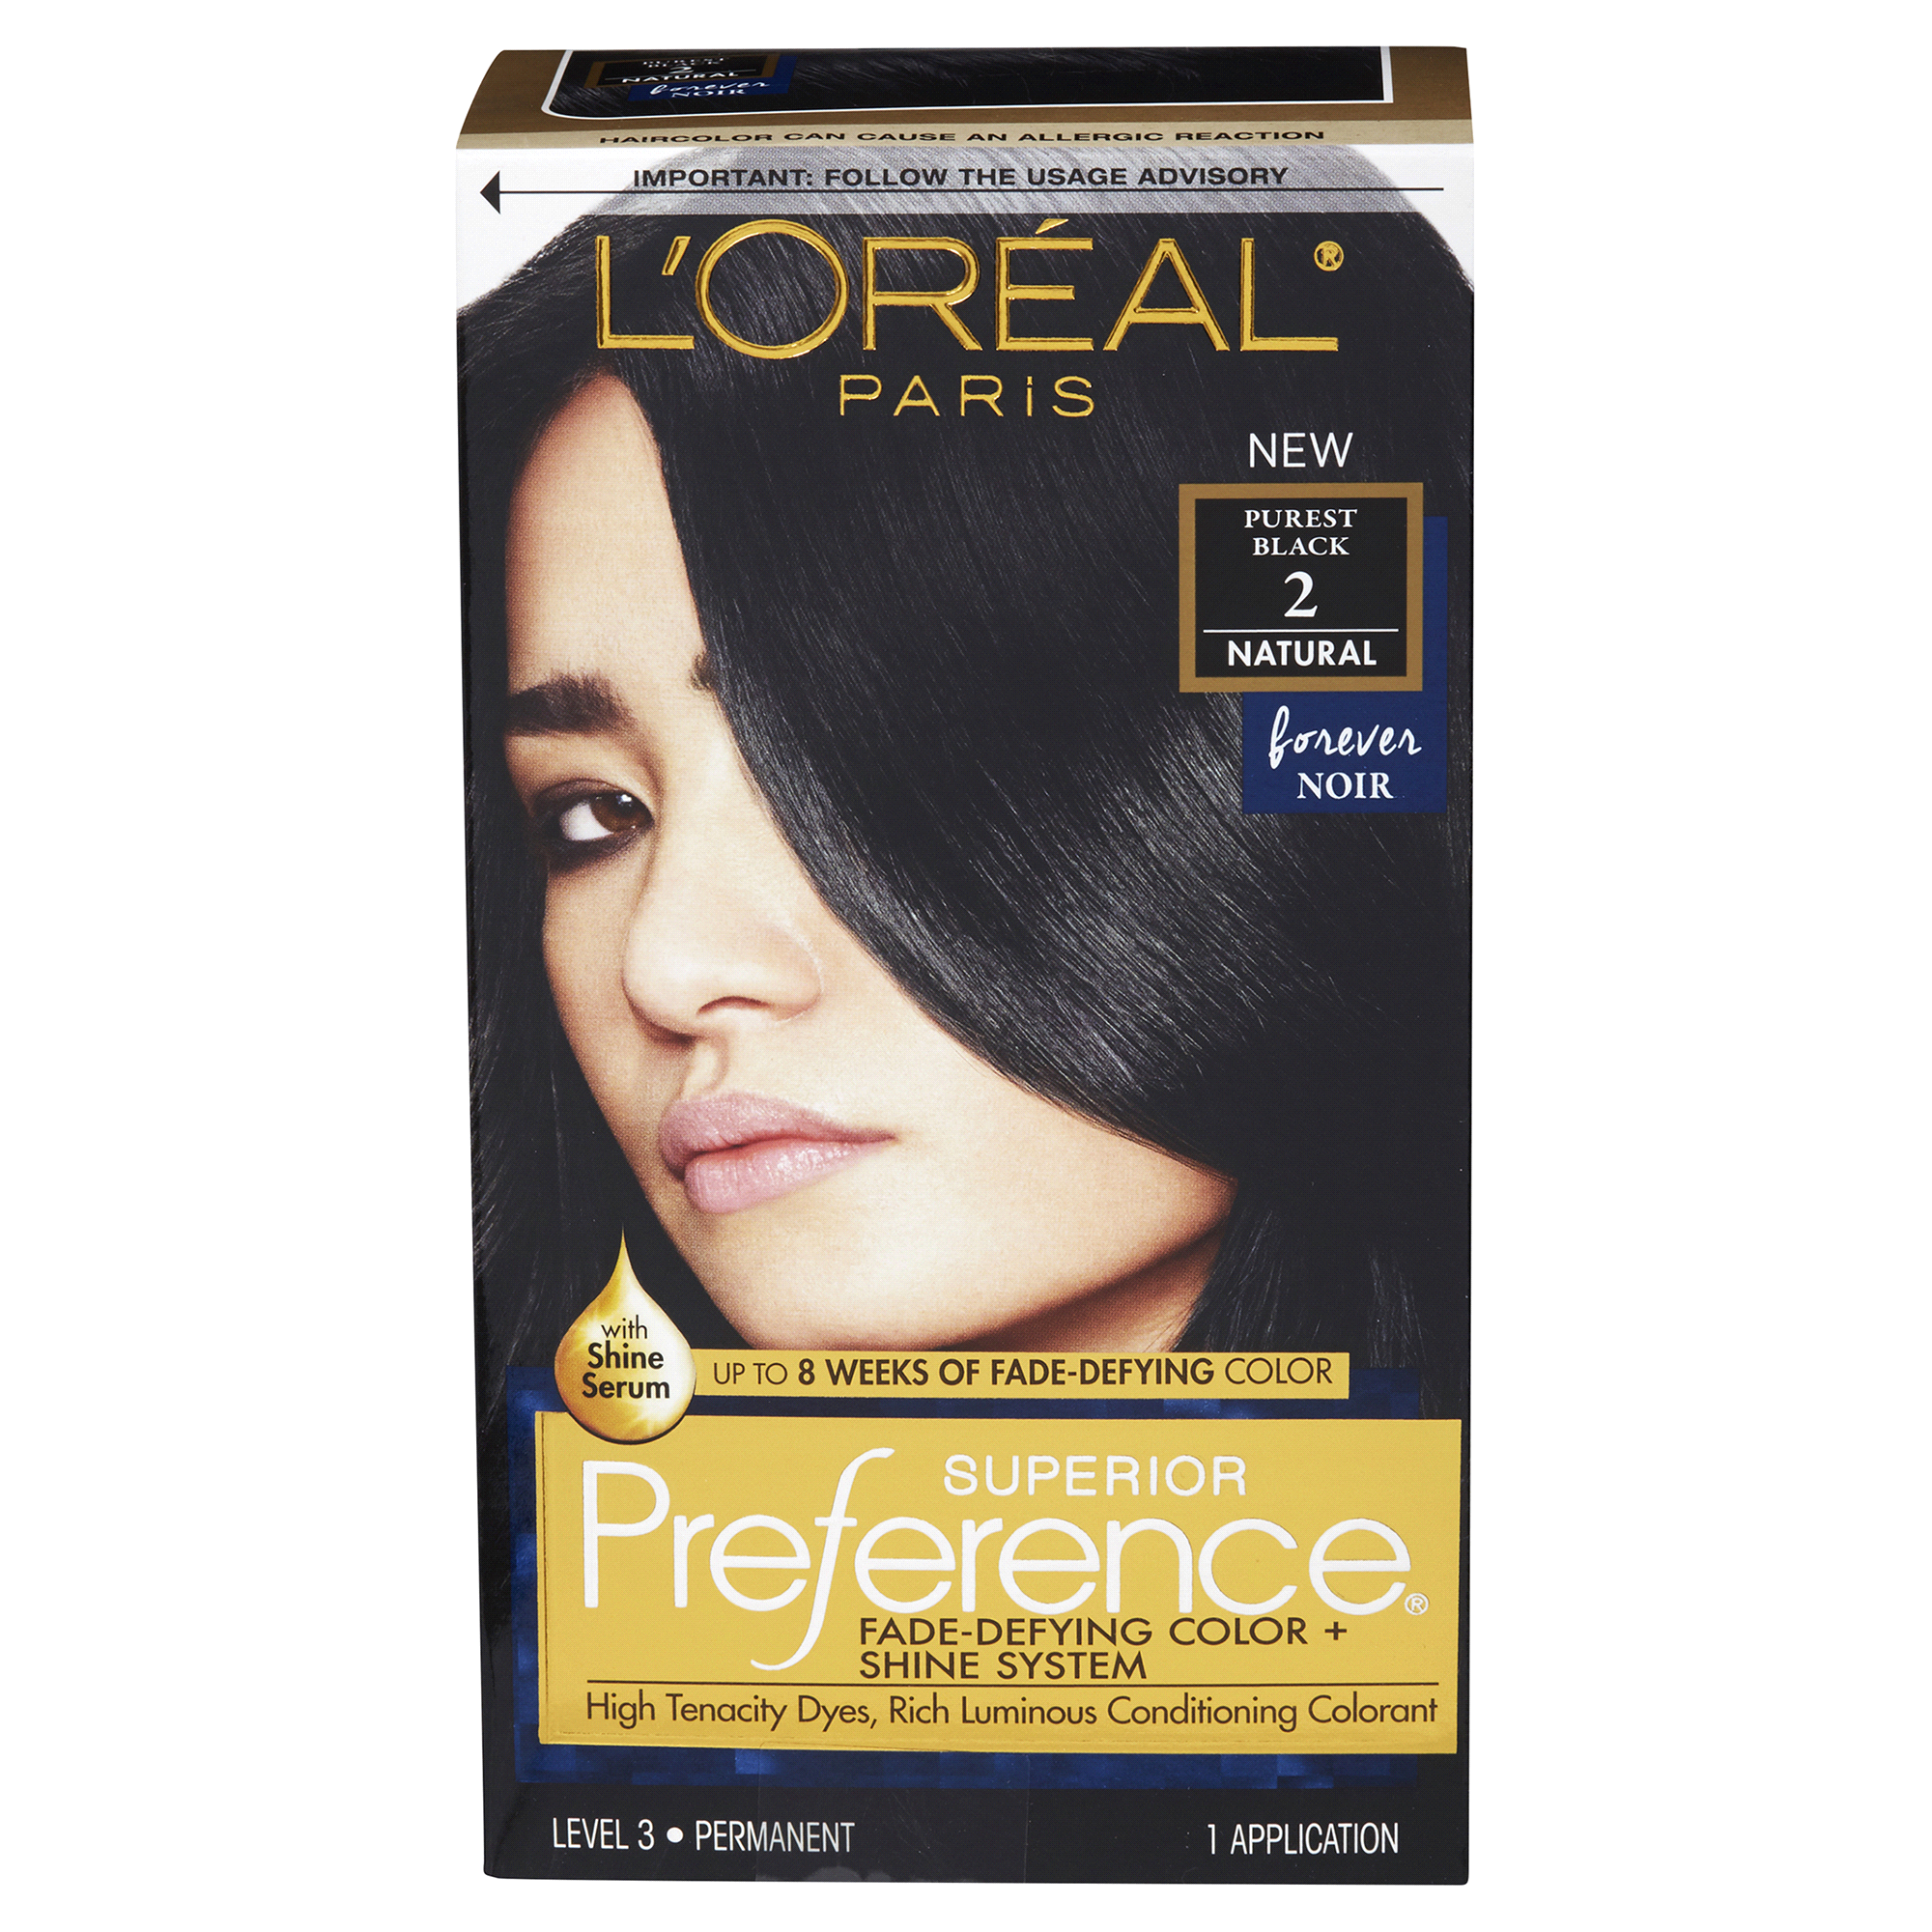 Loreal Paris Preference Permanent Hair Color Purest Black 2 Natural